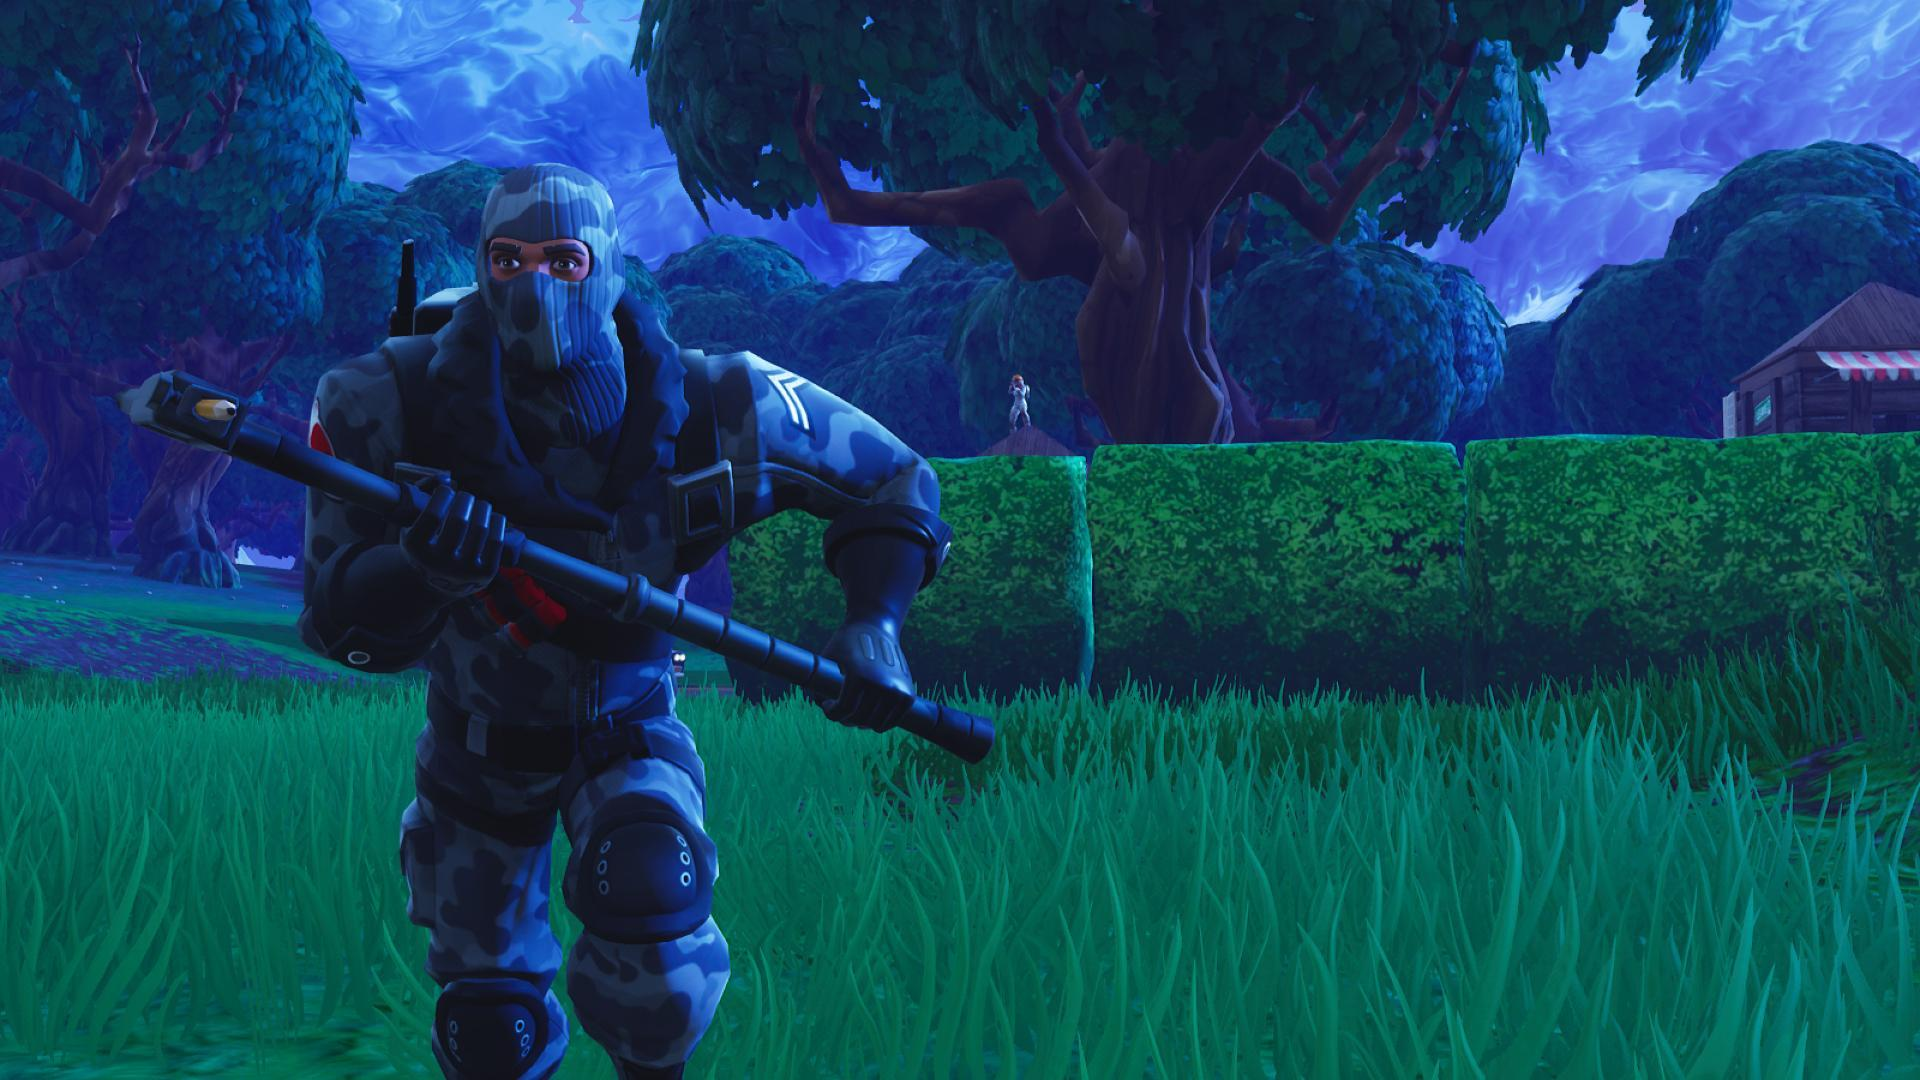 HD Wallpapers Of Havoc From Fortnite